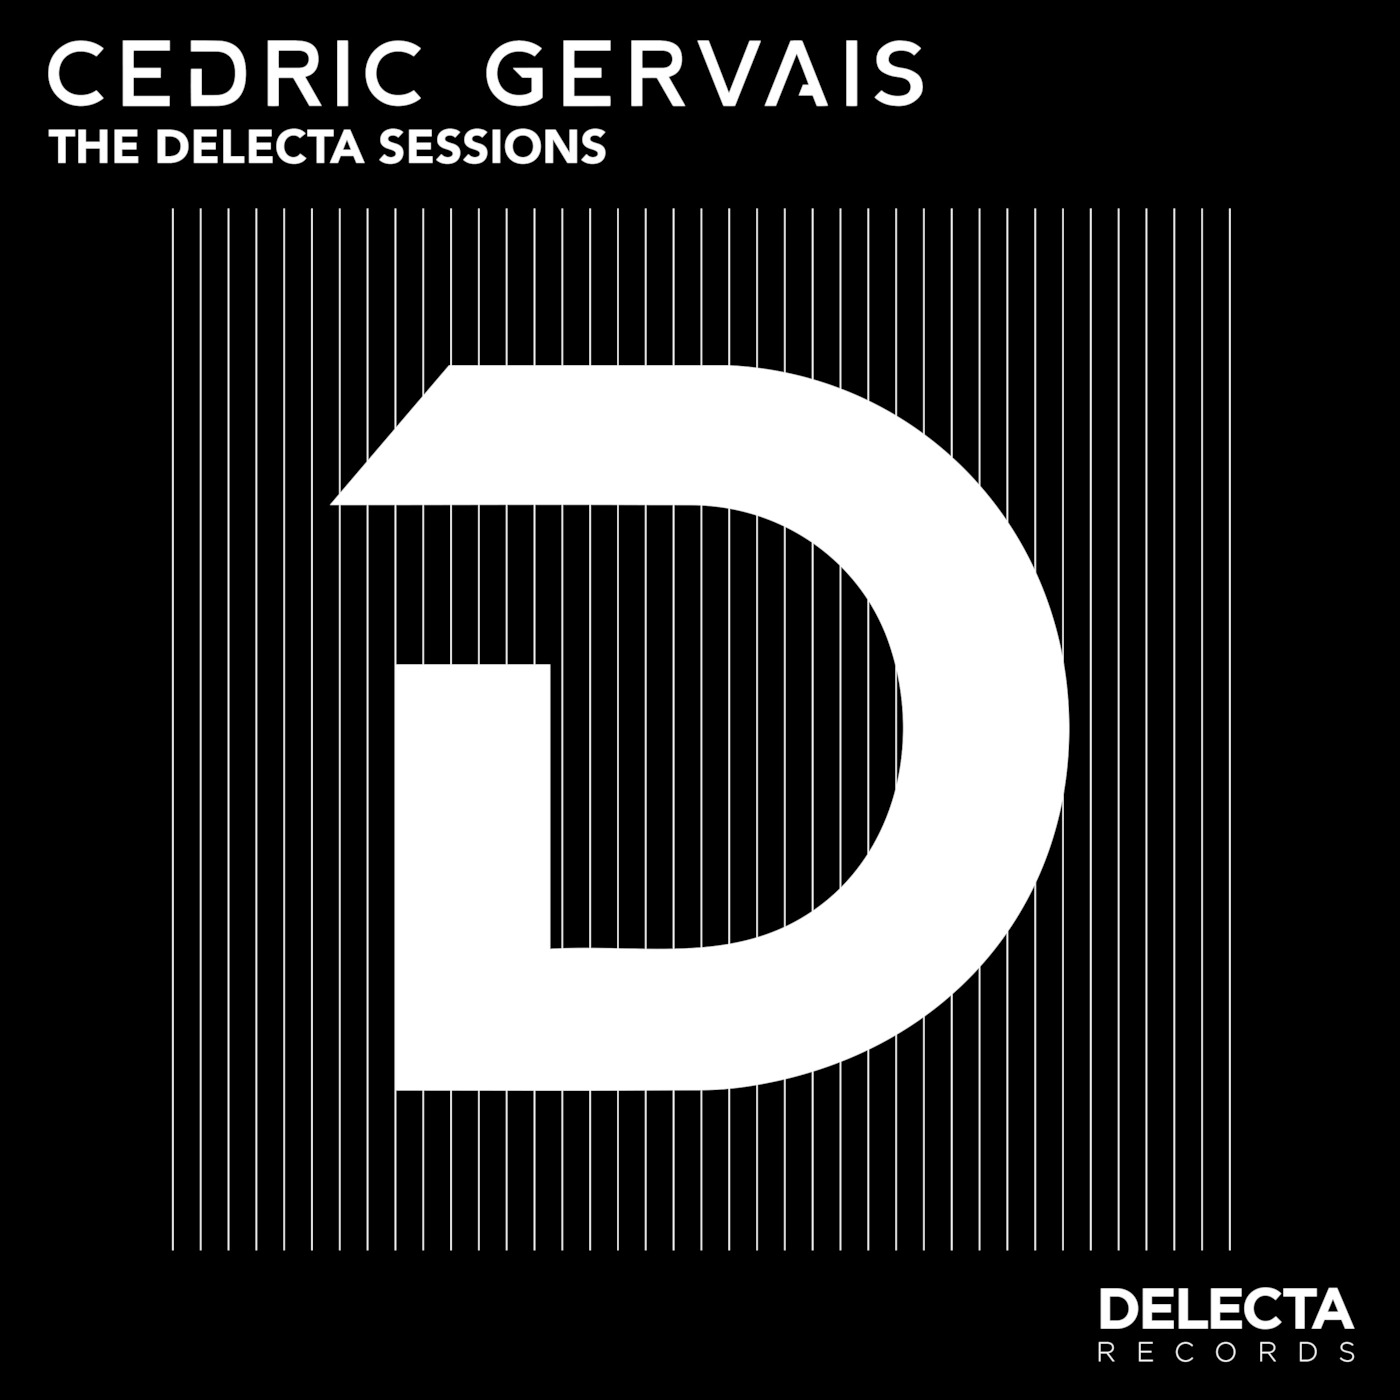 Cedric Gervais Presents: The Delecta Sessions